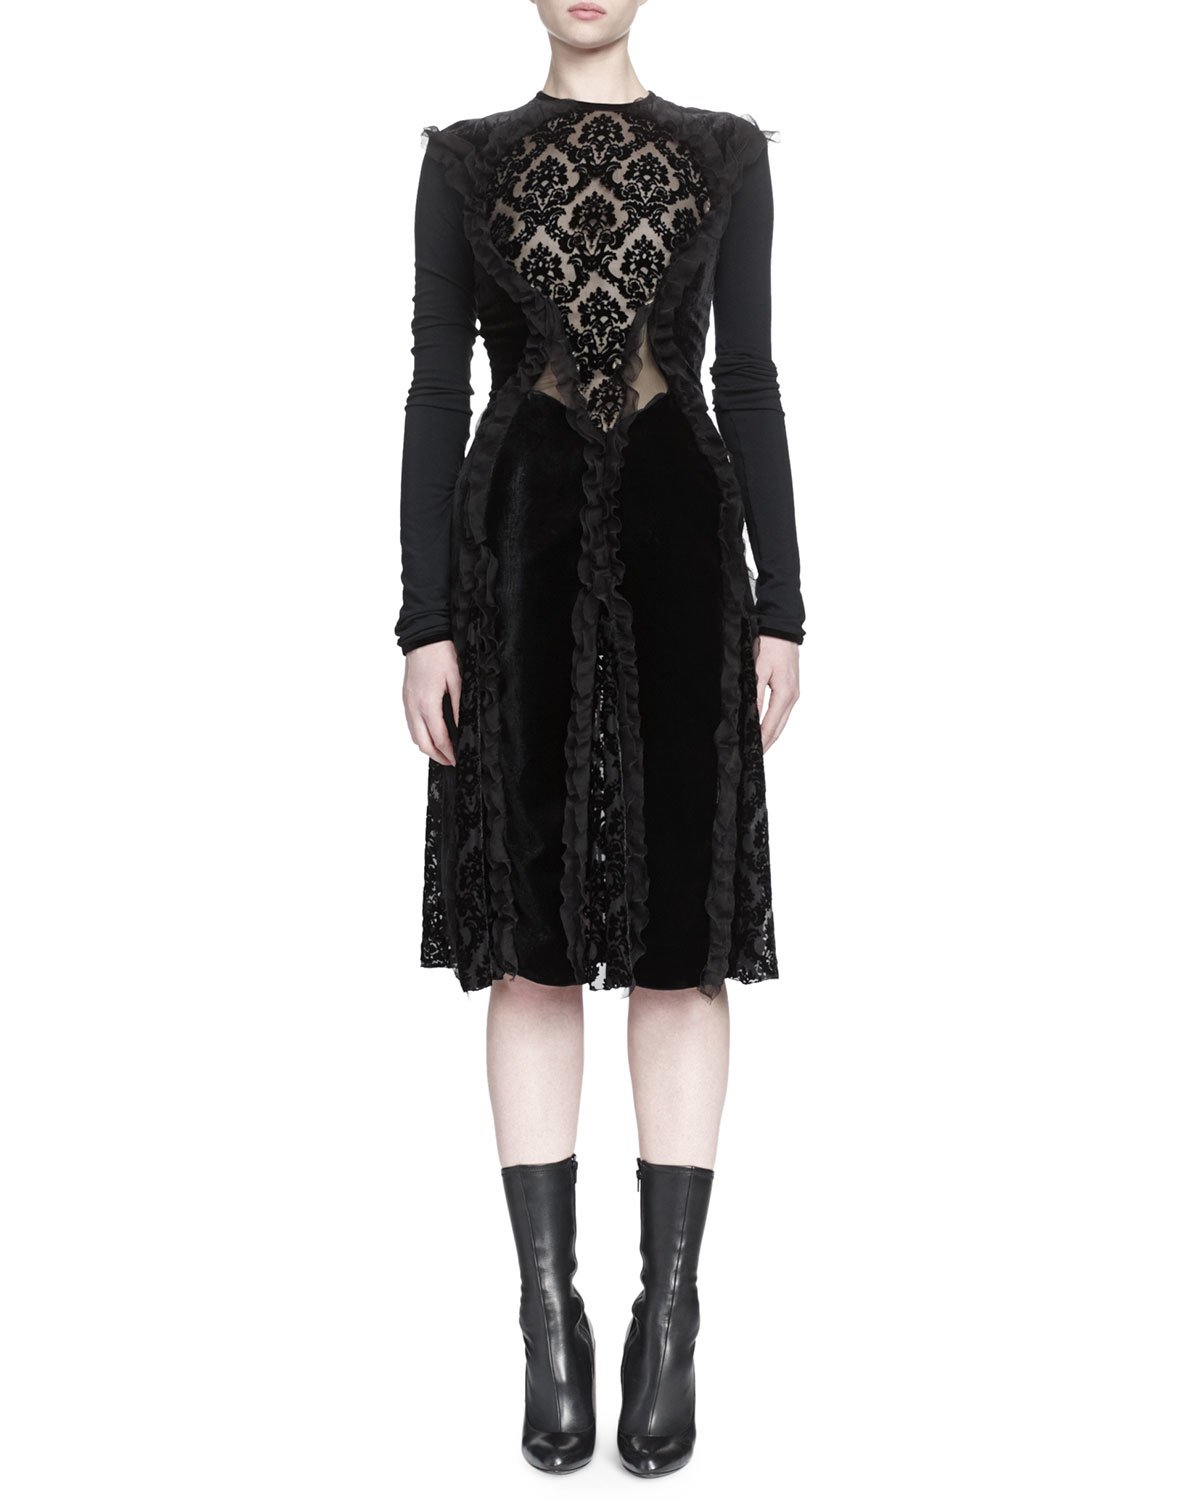 Givenchy Devore Ruffled Dress in Black